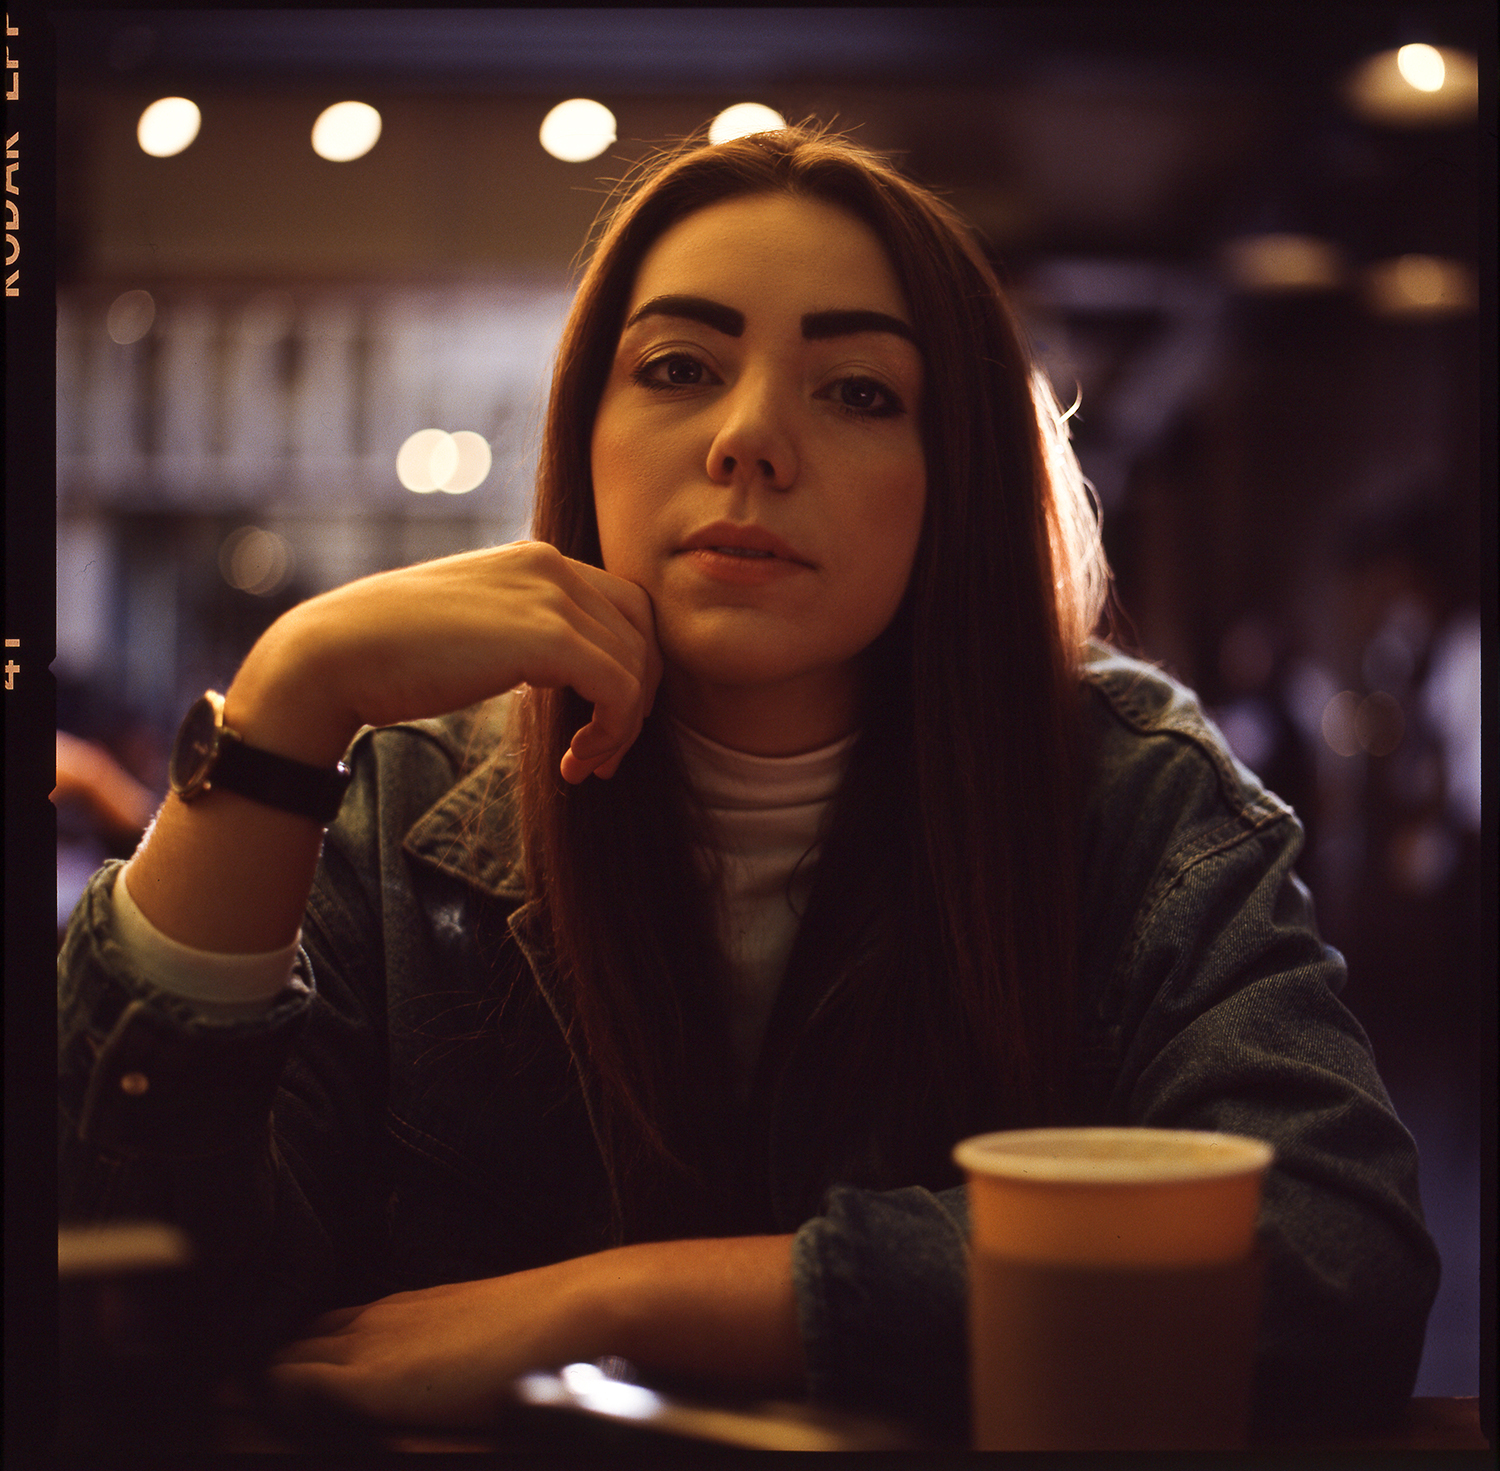 50-Kodak-Color-Plus-EPP-200_-NYC-Brooklyn-Coffee-Shop-Golden-Hour-Golden-Light-Portrait.jpg